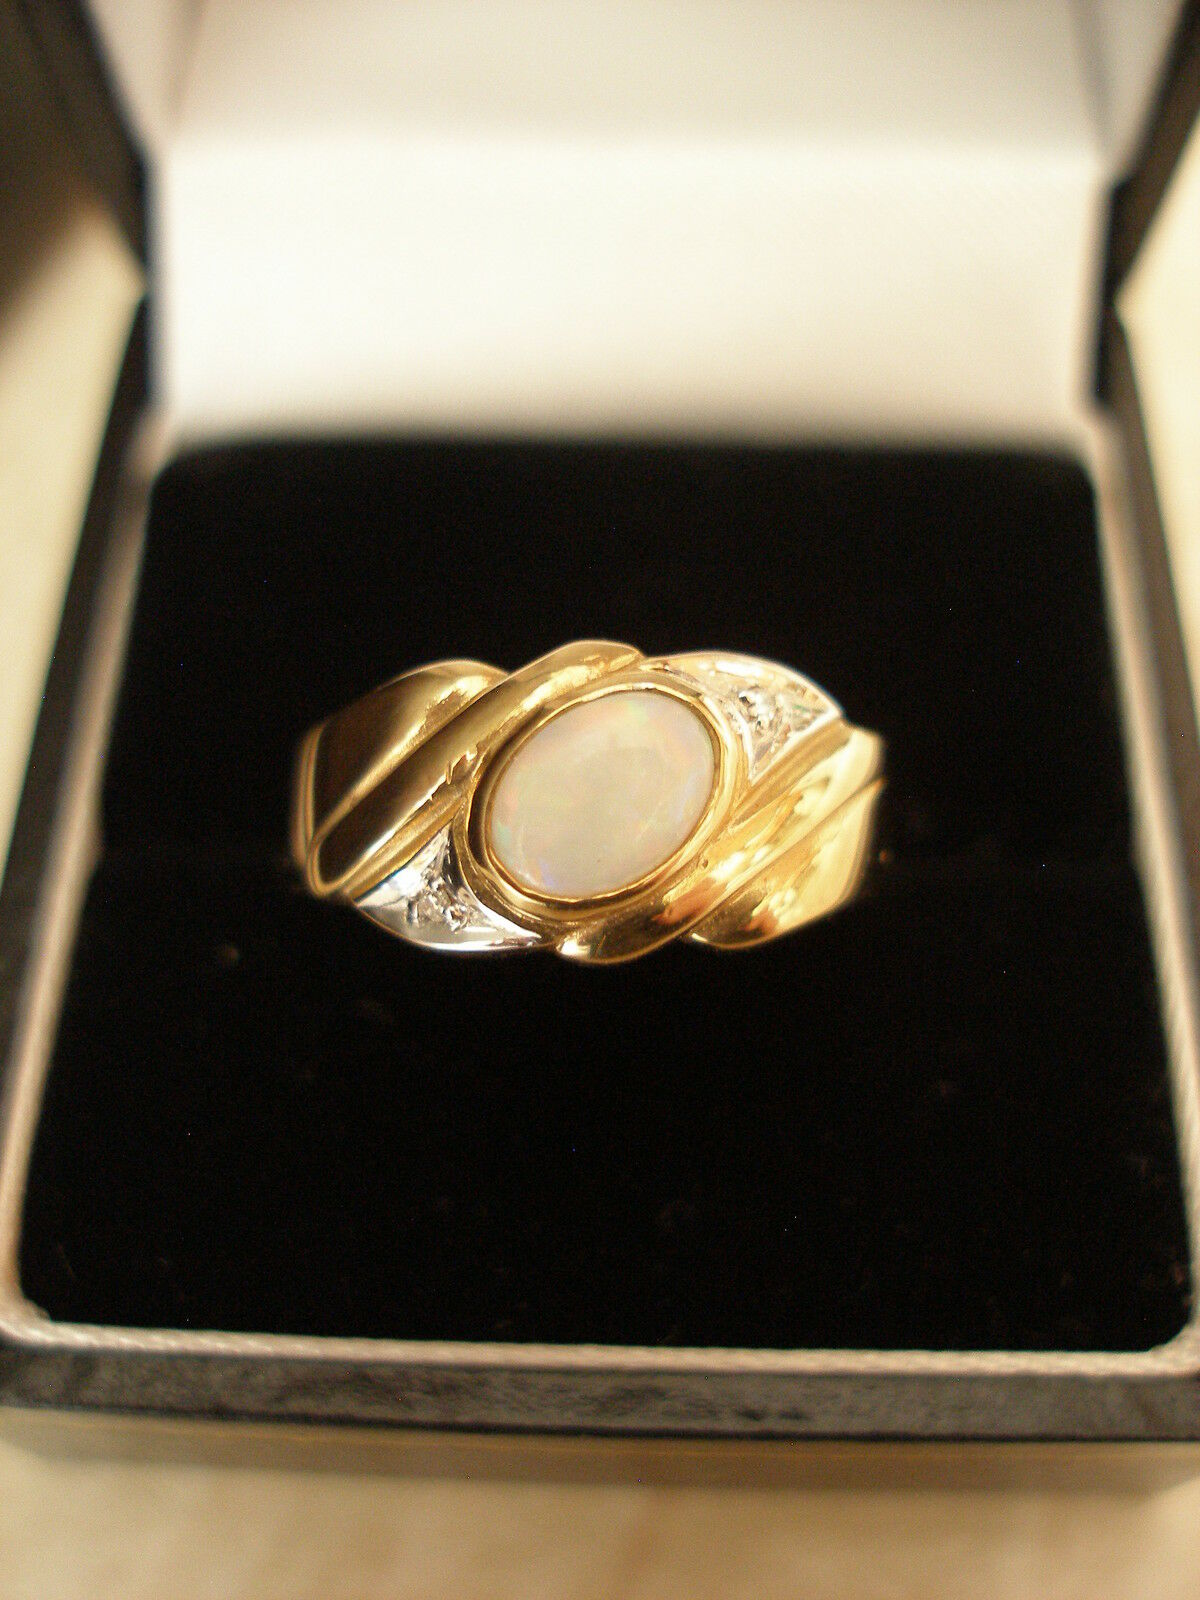 Mens Wedding Ring Hospitable 9ct White Gold Wedding Ring Hallmarked Gold